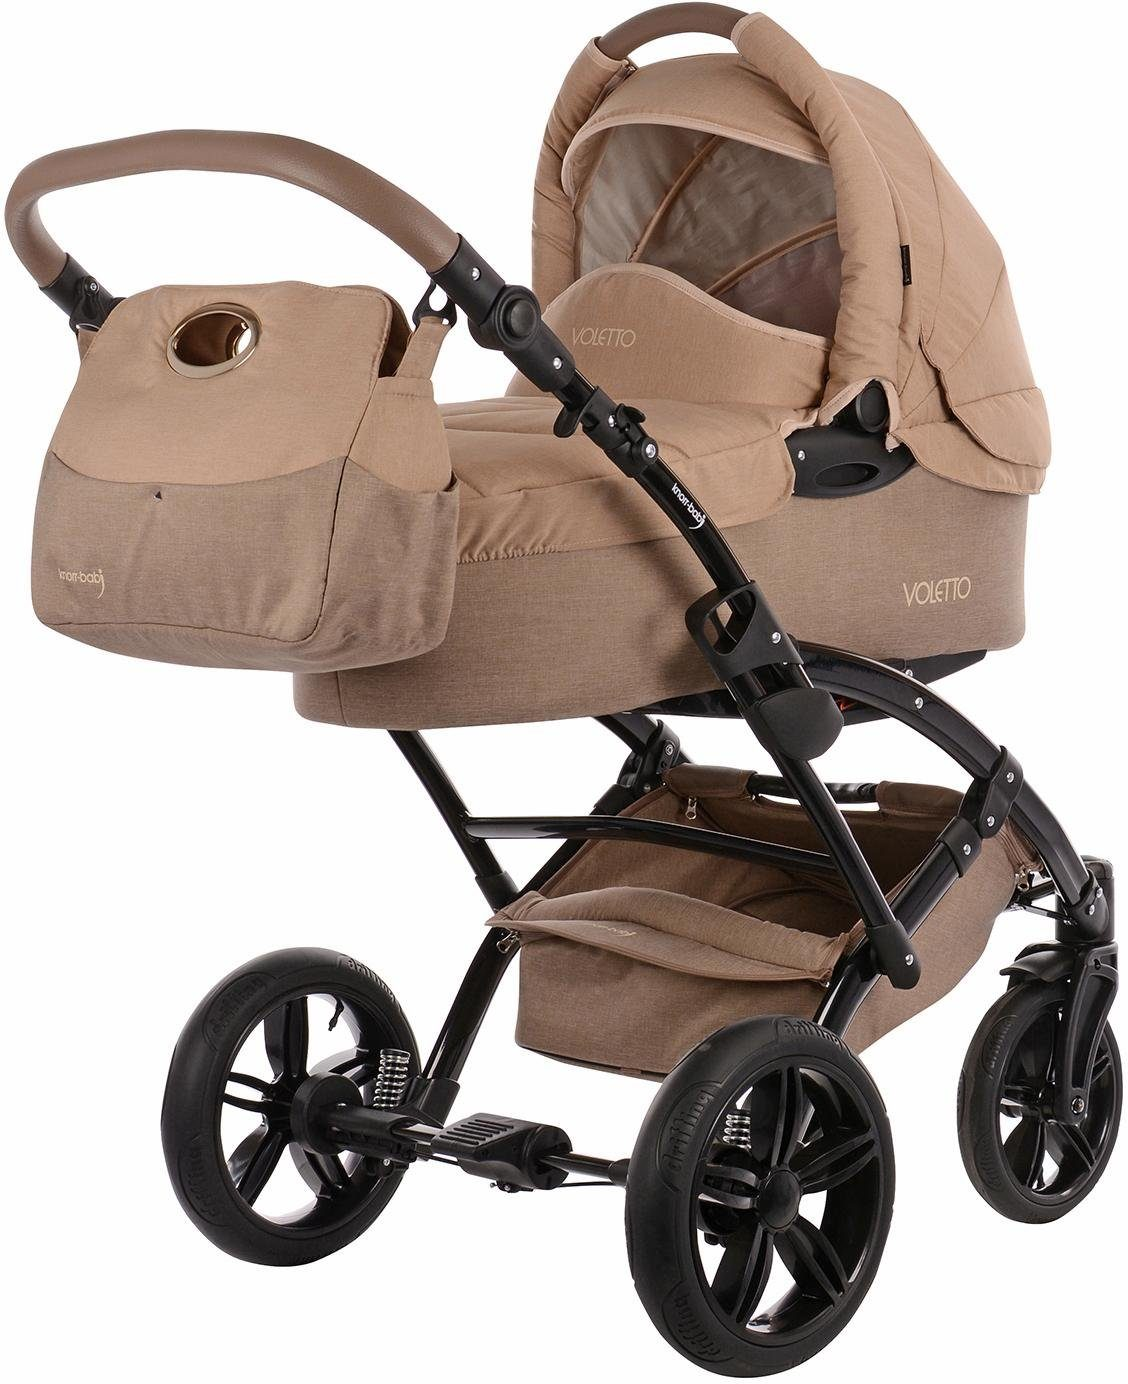 knorr-baby Kombi Kinderwagen, »Voletto Happy Colour, sand-beige«